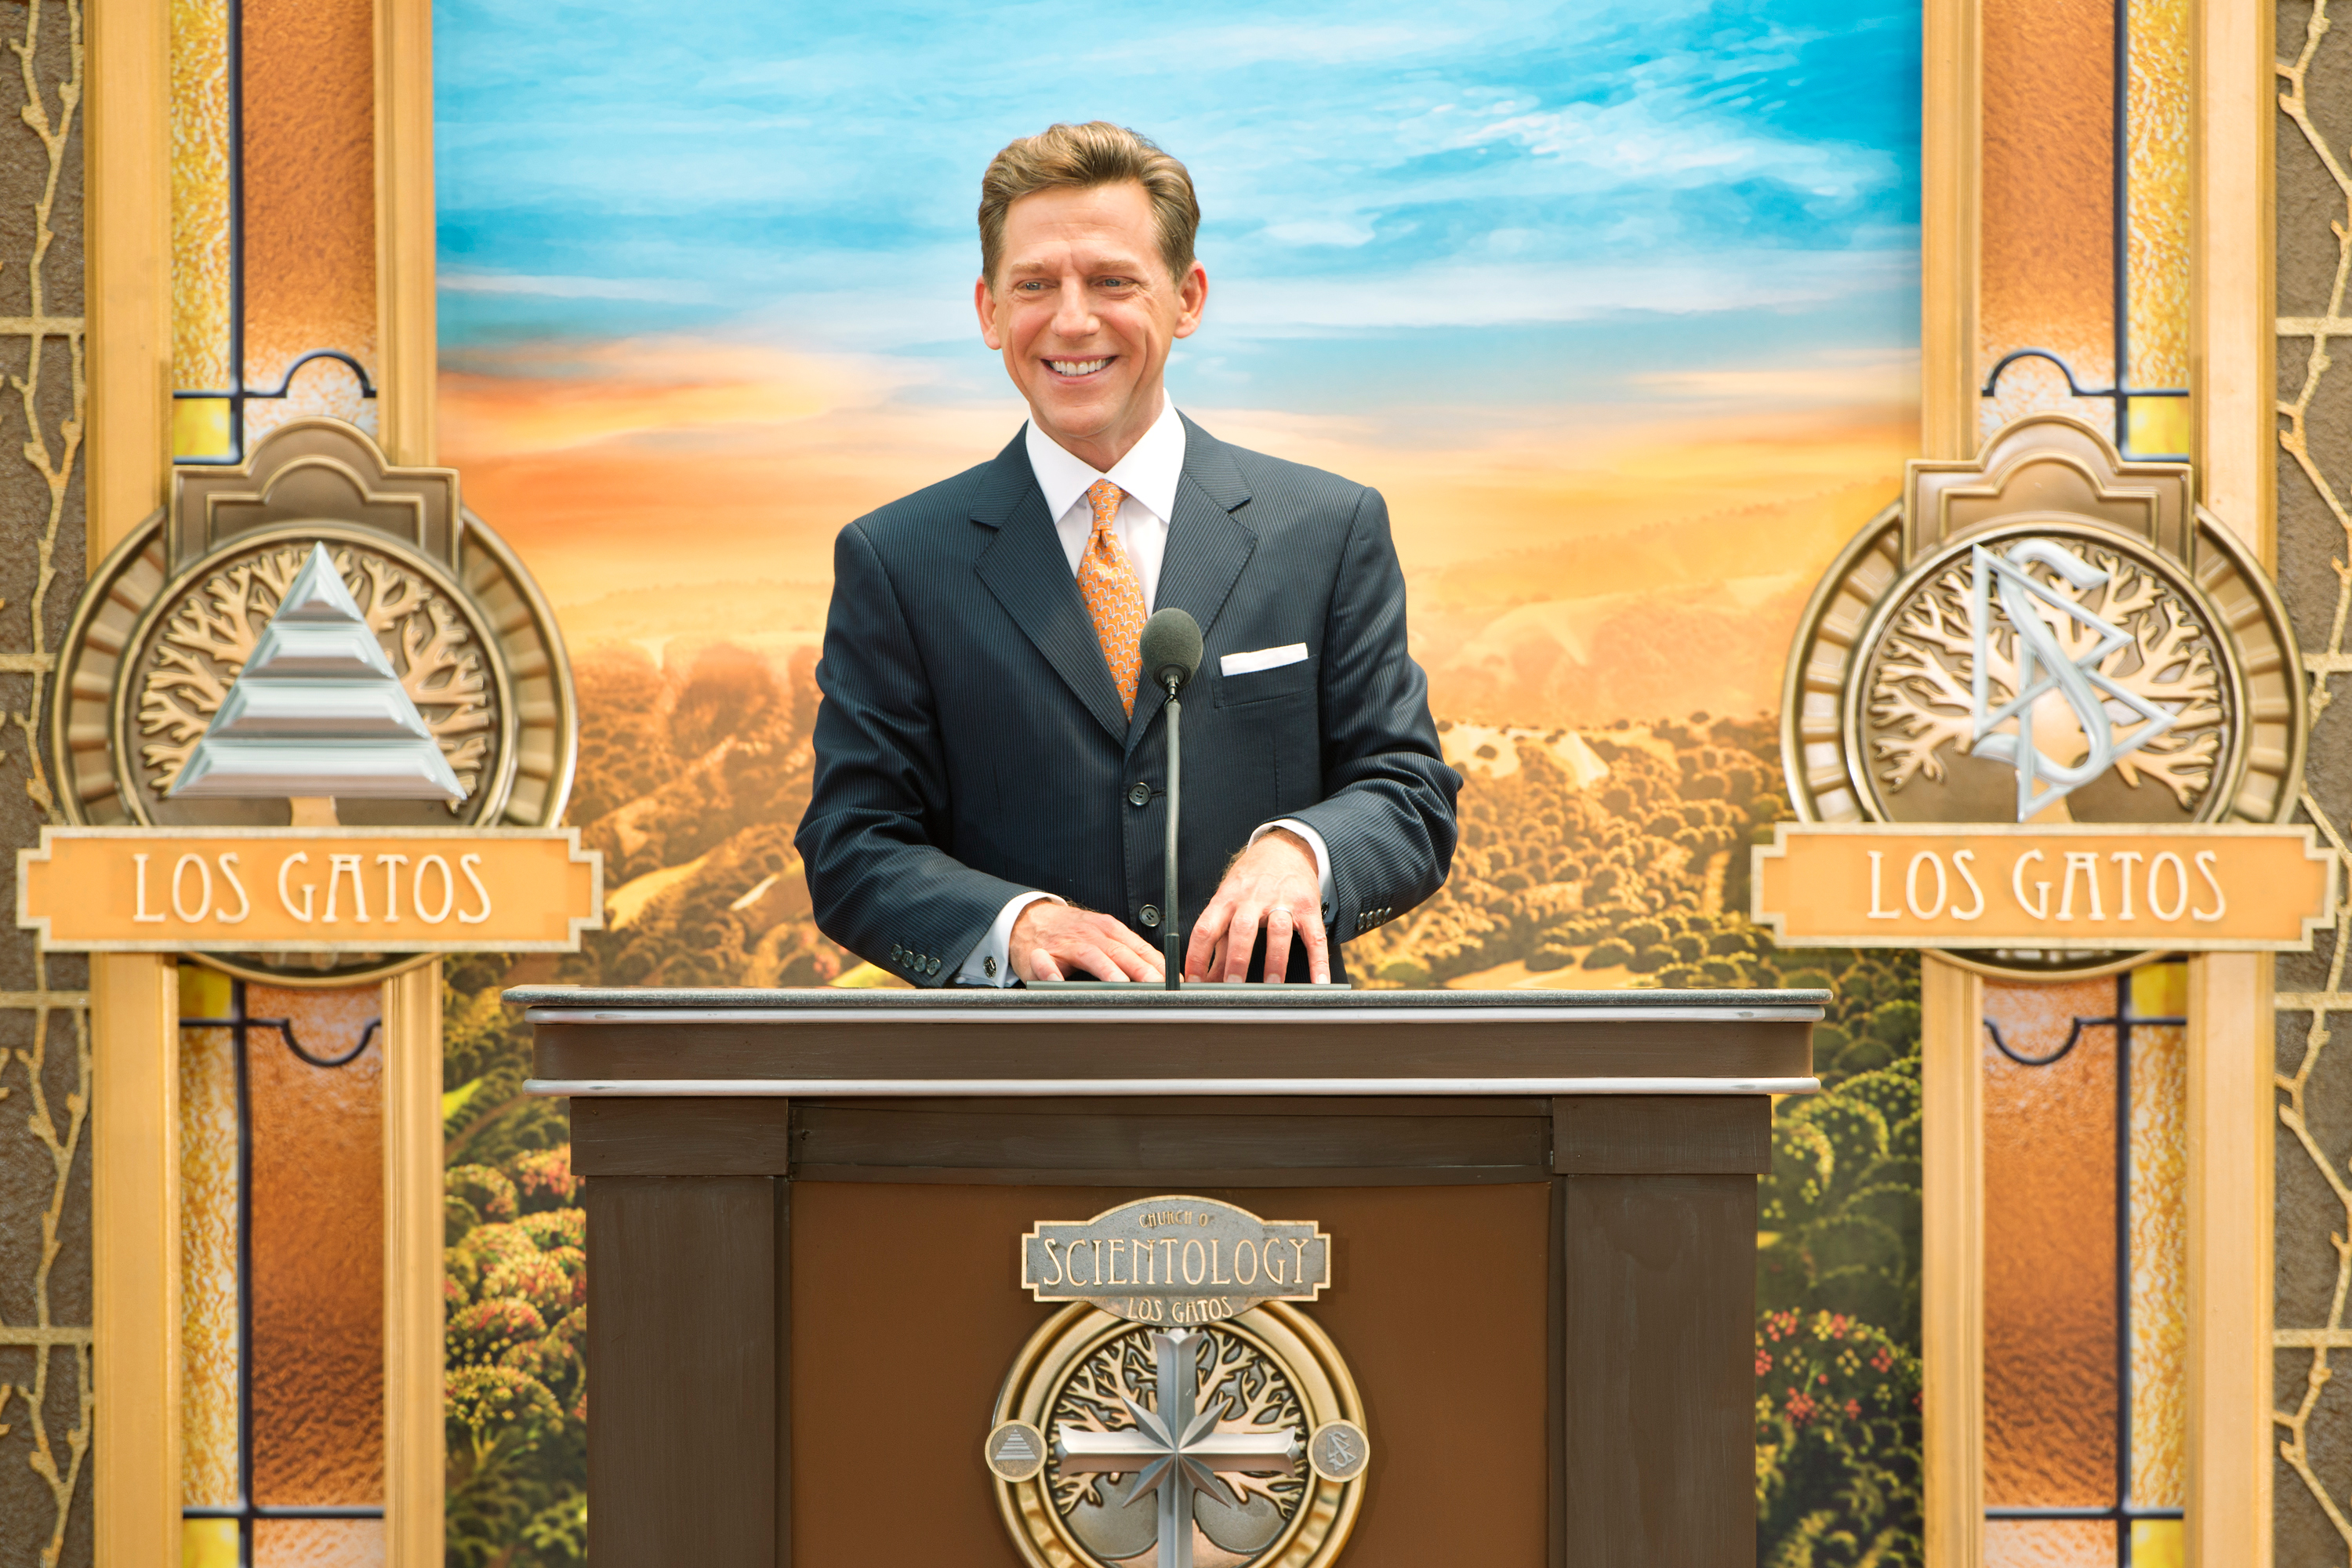 Where did the Scientology religion come from?